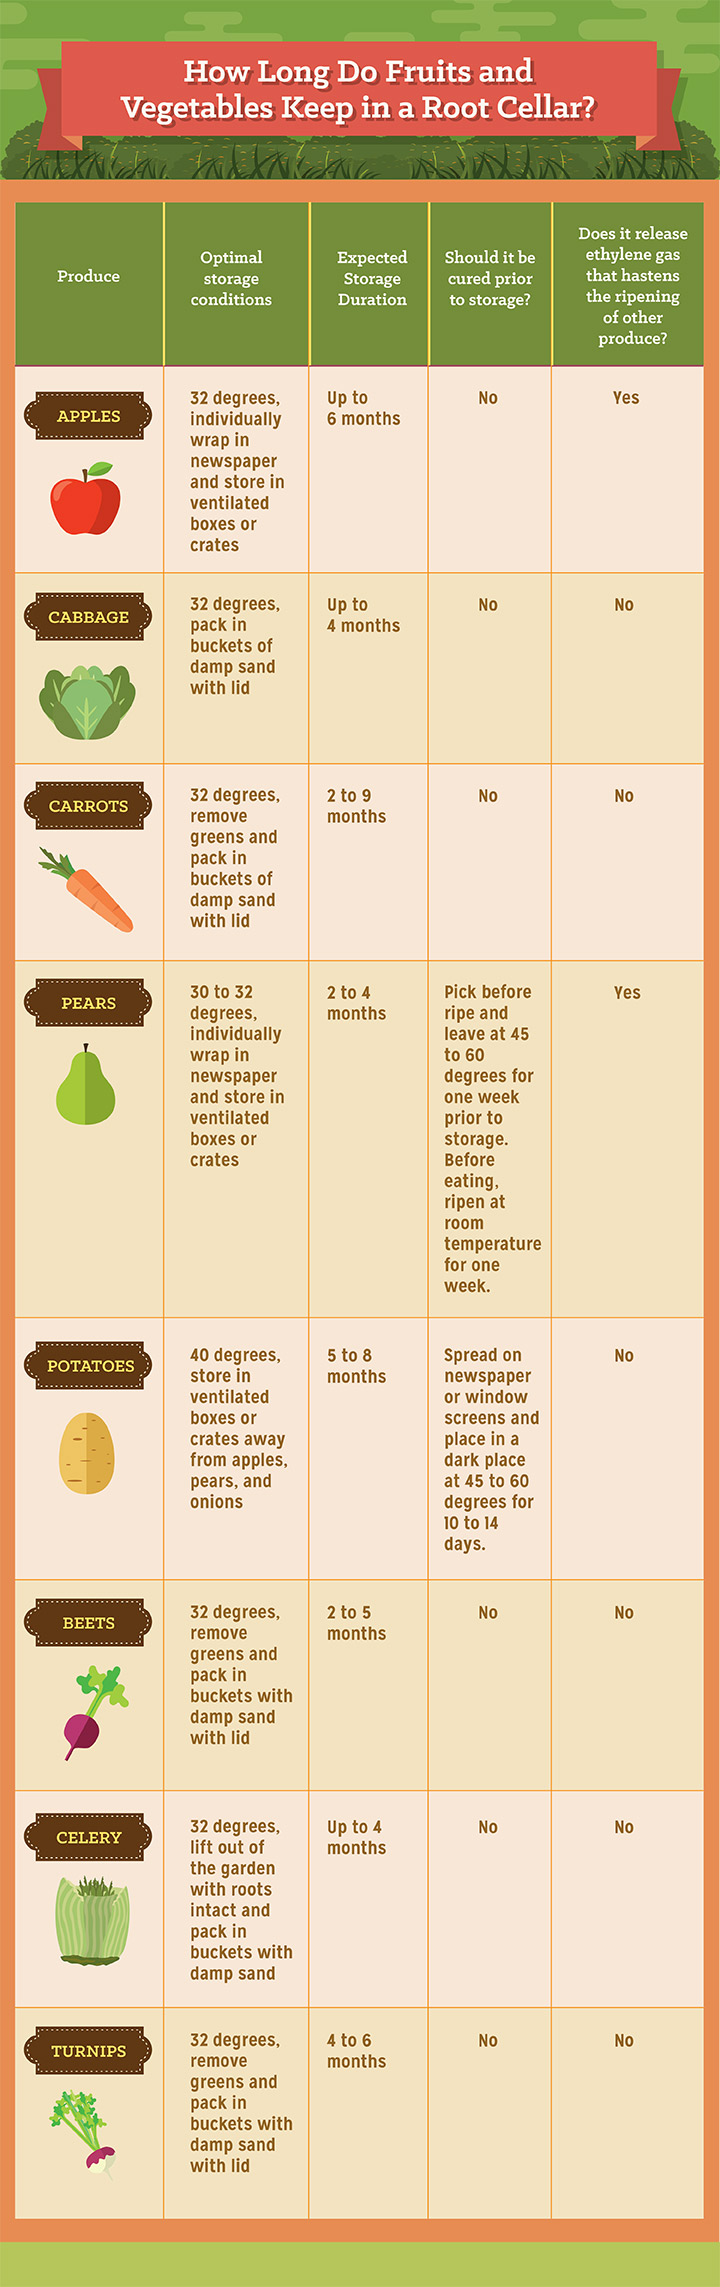 How Long Do Fruits and Vegetables Keep in a Root Cellar